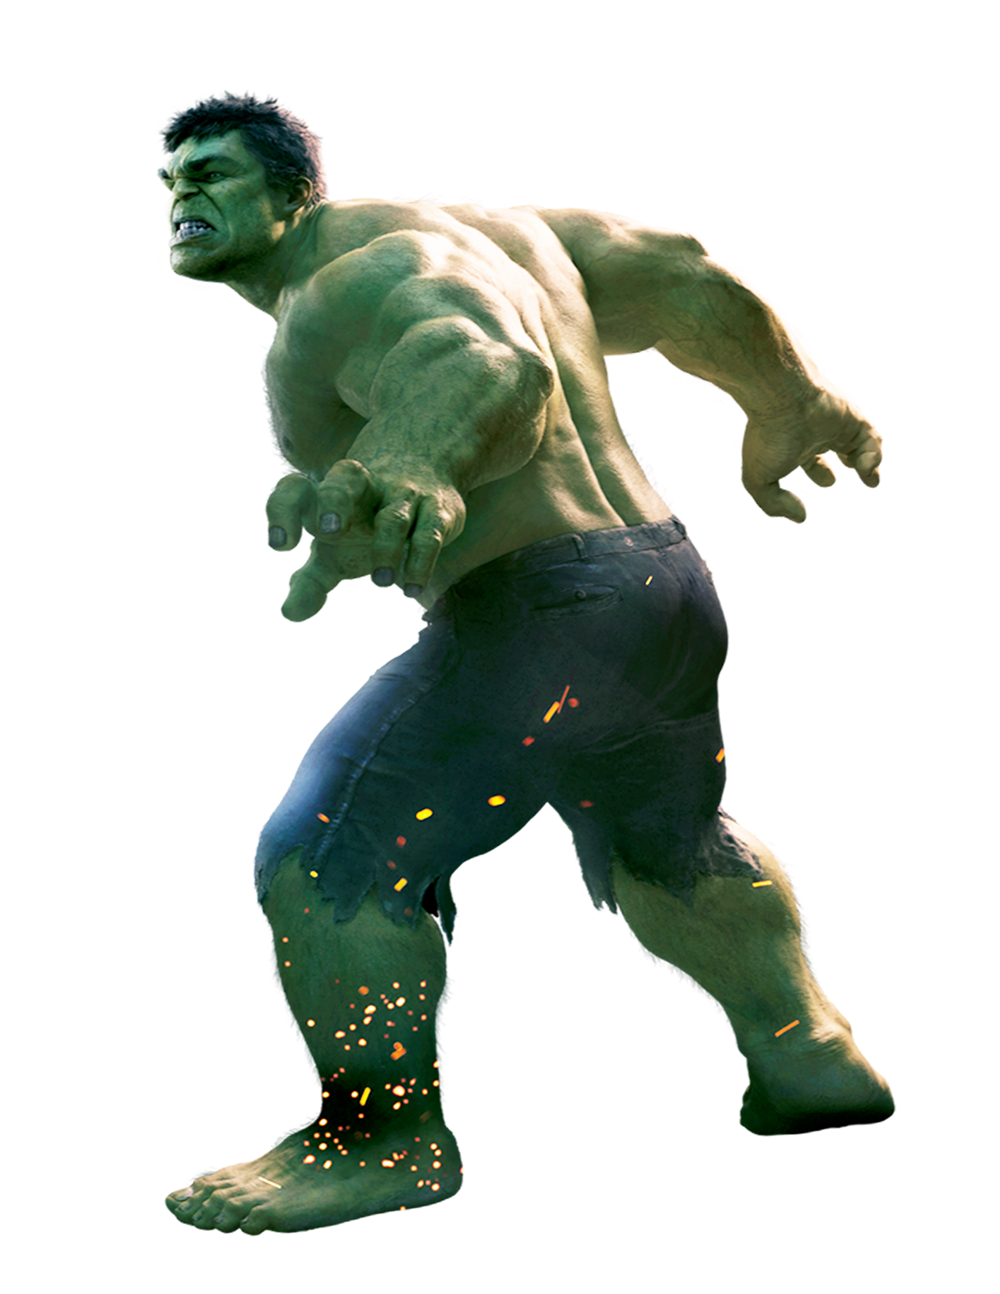 The hulk png. Hd mart